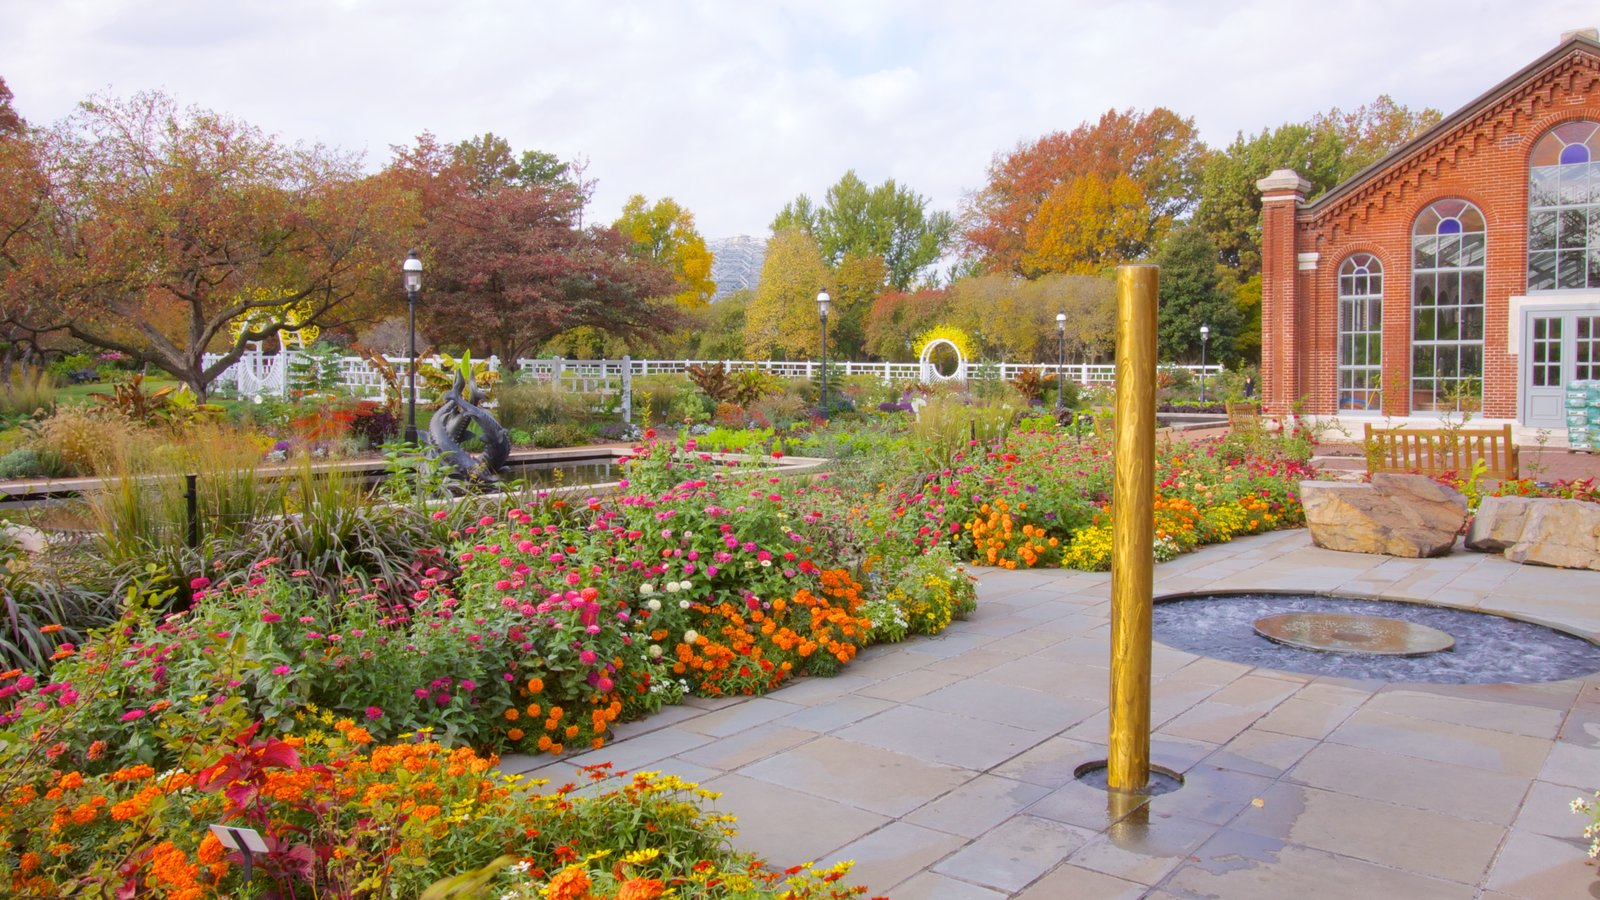 Missouri Botanical Gardens and Arboretum showing a garden and flowers